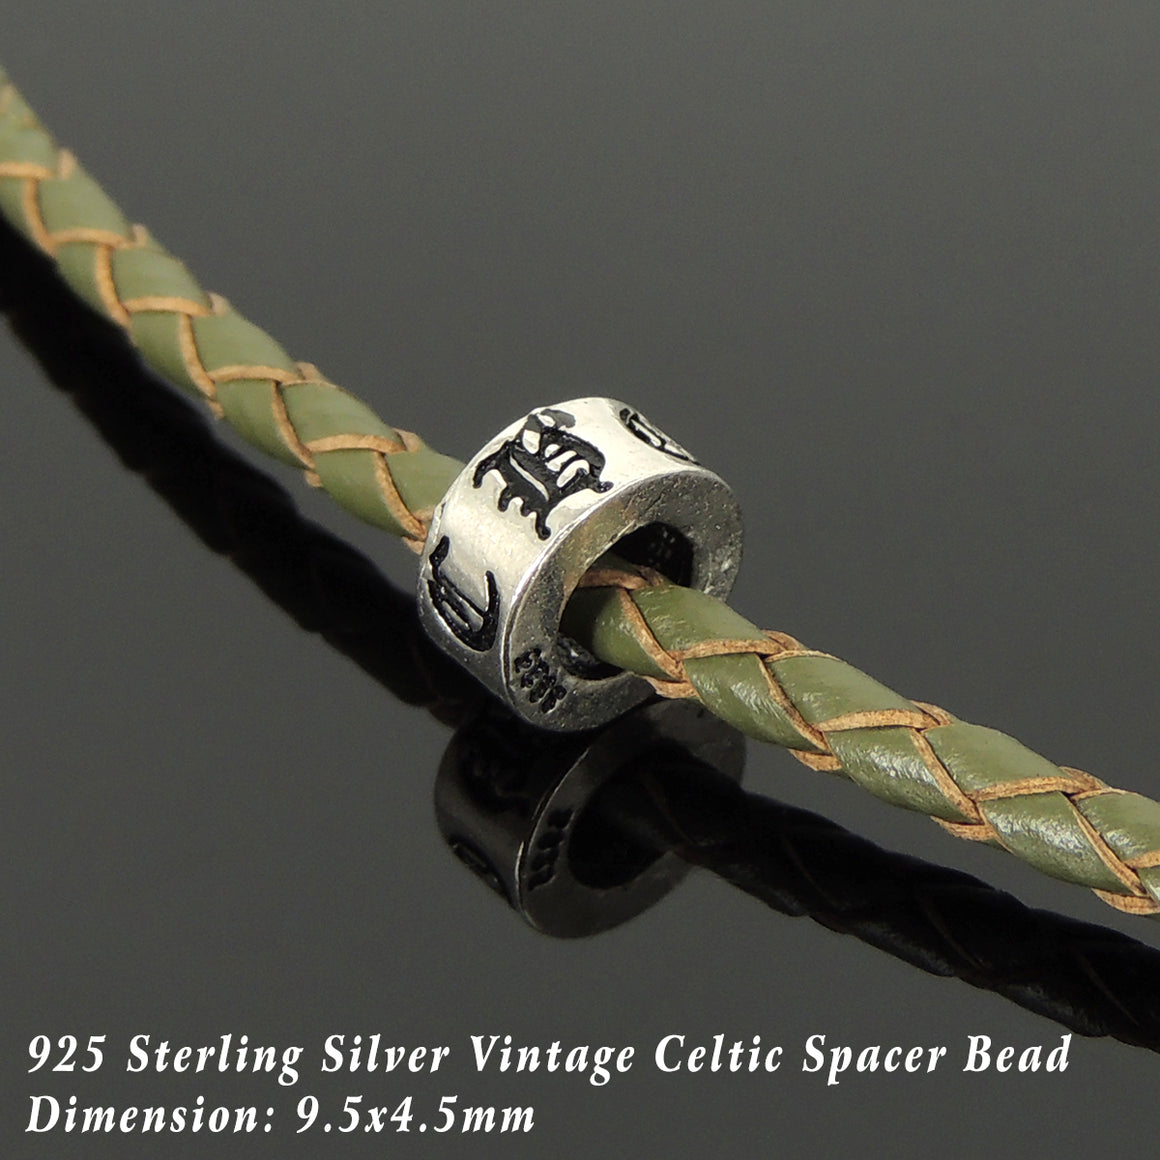 Handmade Vintage Celtic Choker Necklace - Authentic Olive Green Leather for Men's Women's Casual Style with Sterling Silver 925 (non-plated) Parts NK220